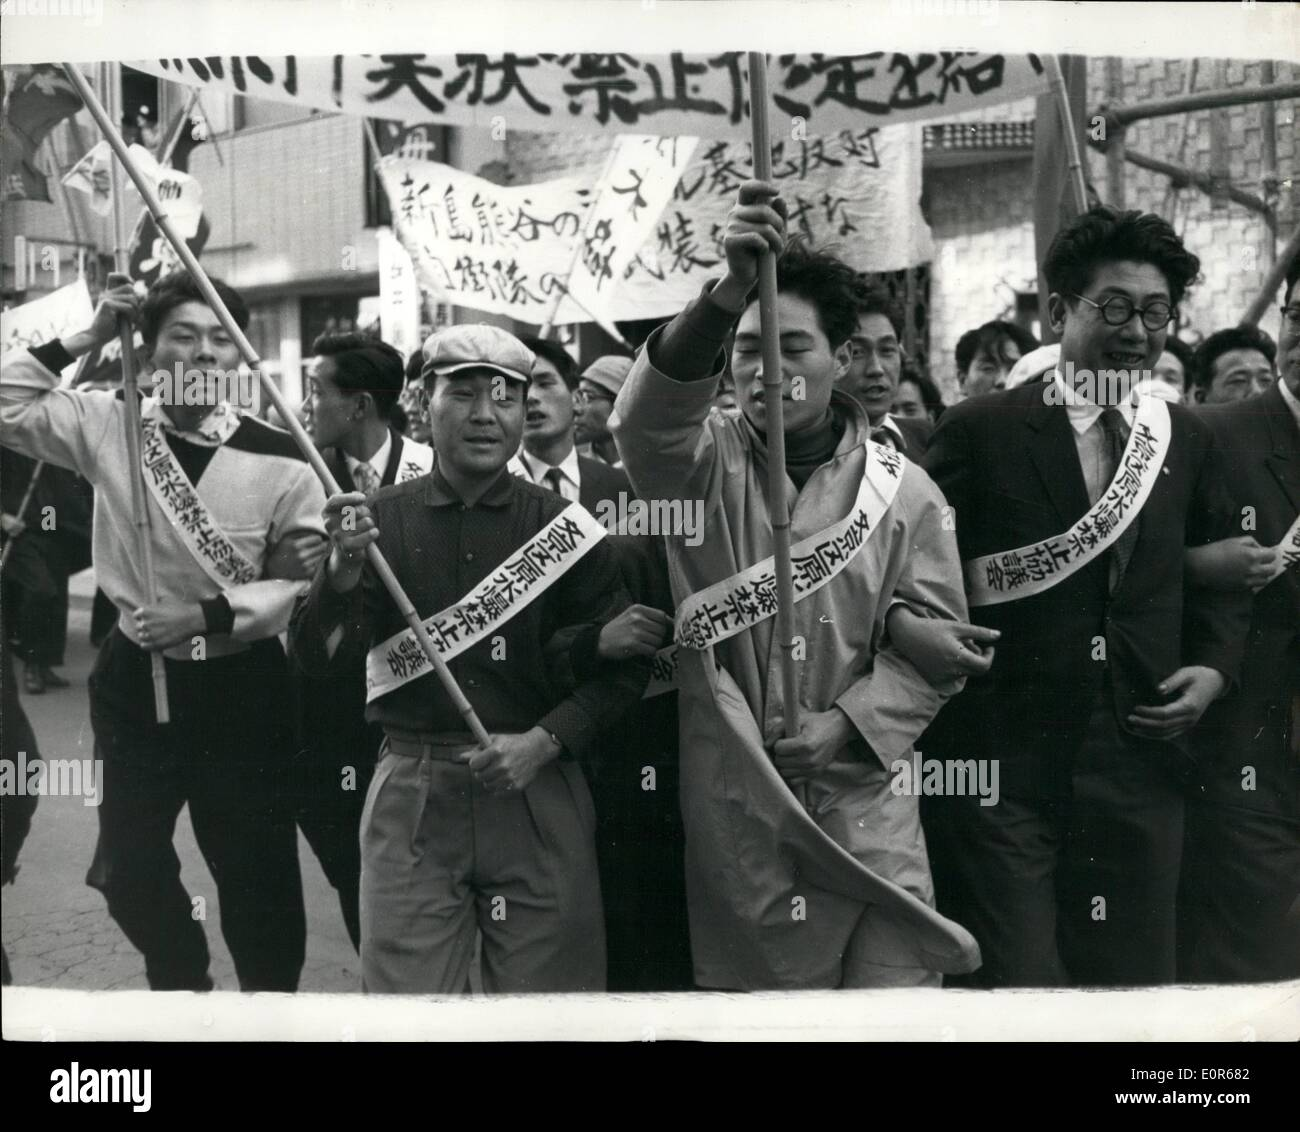 Apr. 04, 1958 - Anti Nuclear Rally in Tokyo. A Mass rally attended by more than 6,000 members of the General Council of Japan Trade Unions, Japan Against Atomic and Hydrogen Bombs, National Federation of Student Self Government Associations and other affiliated organisations, was held at Hibiya Park, Tokyo, in protest against the use of Japan as a nuclear base. The rally approved a resolution against nuclear weapon which will be delivered to the governments of the U.S., Britain and the Soviet Union - Stock Image